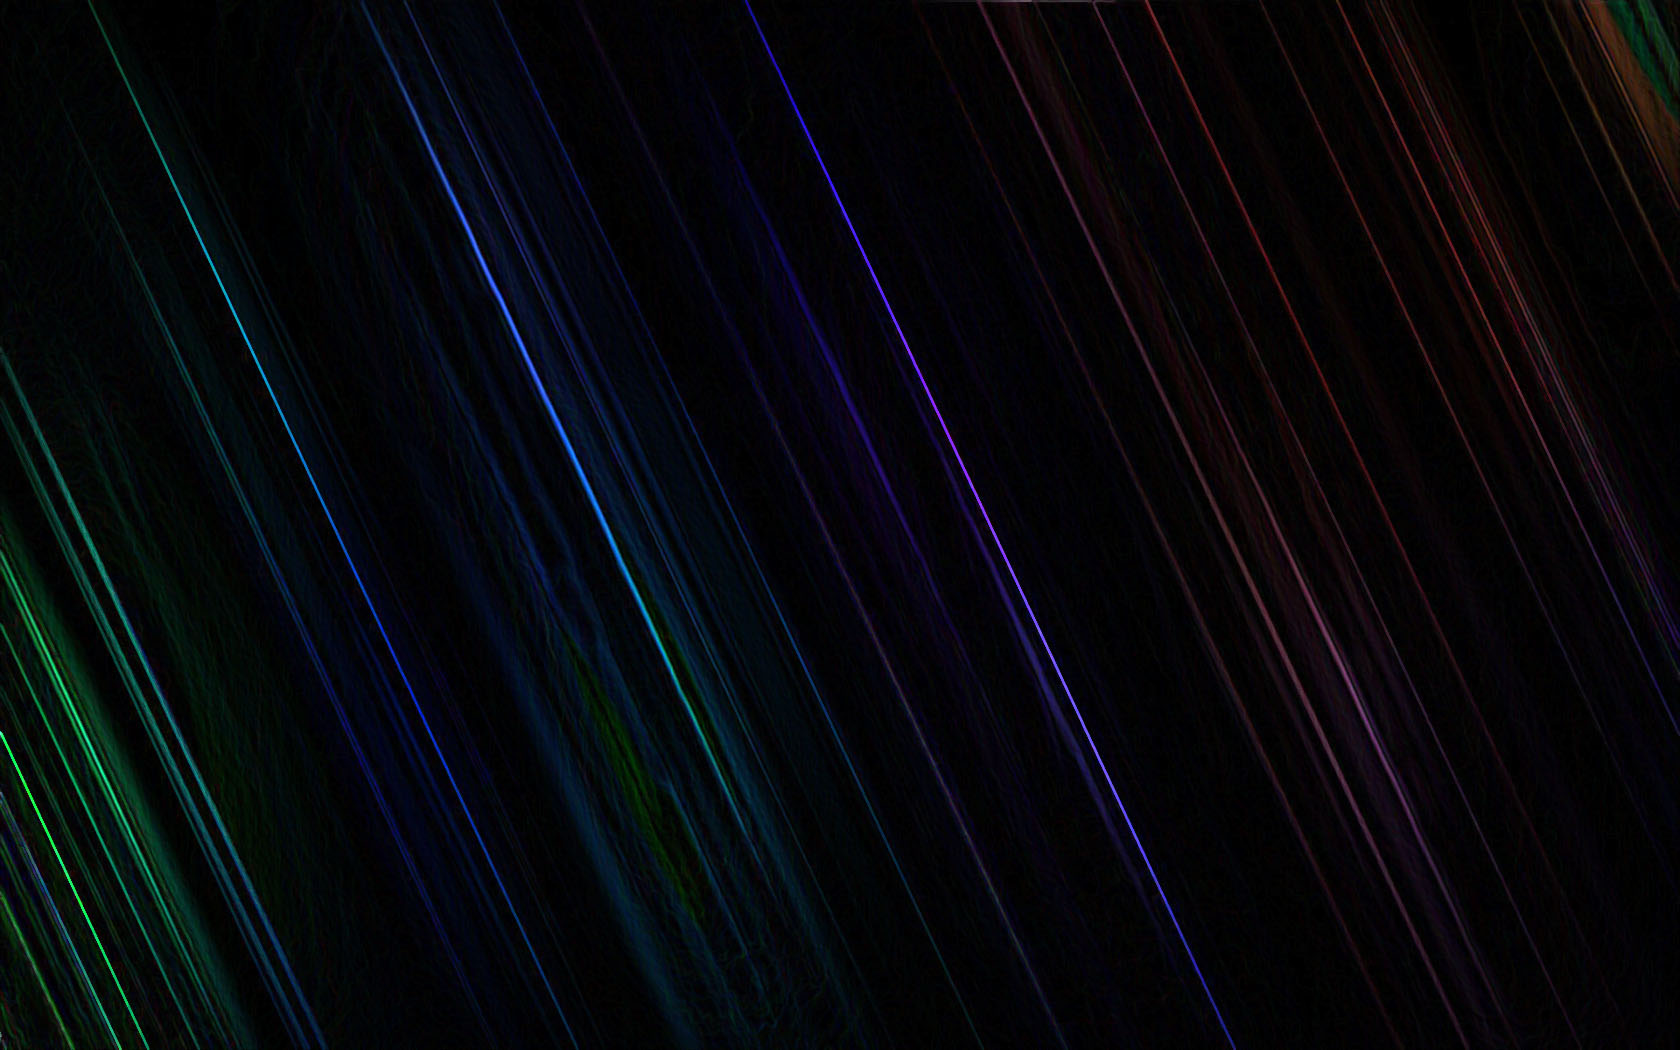 Image Glowing Striations Wallpapers And Stock Photos